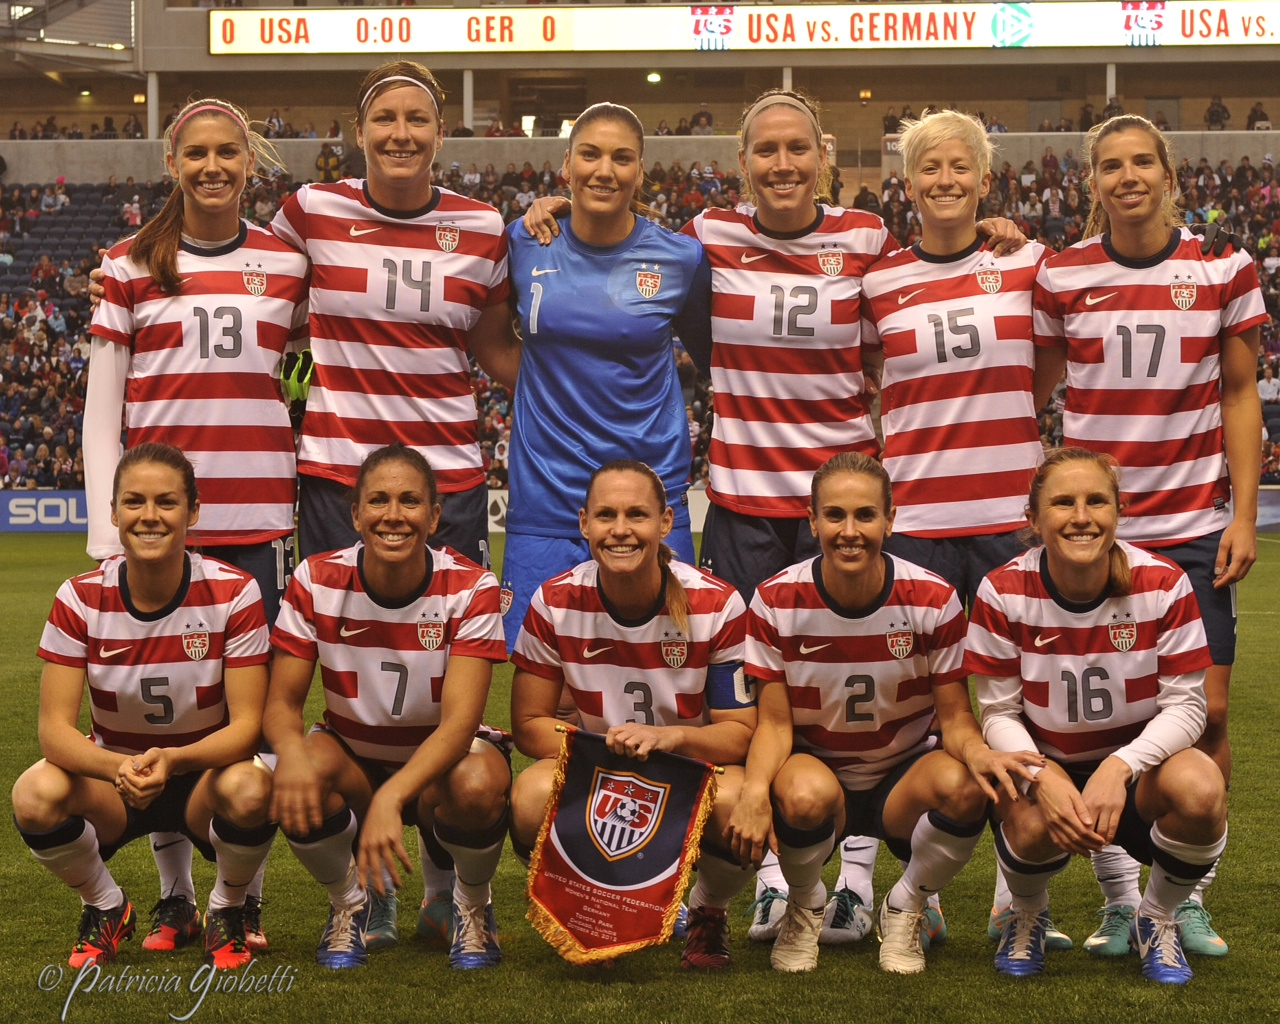 The USWNT will face Korea Republic twice in June. (Copyright Patricia Giobetti | http://www.printroom.com/pro/psgiobetti)